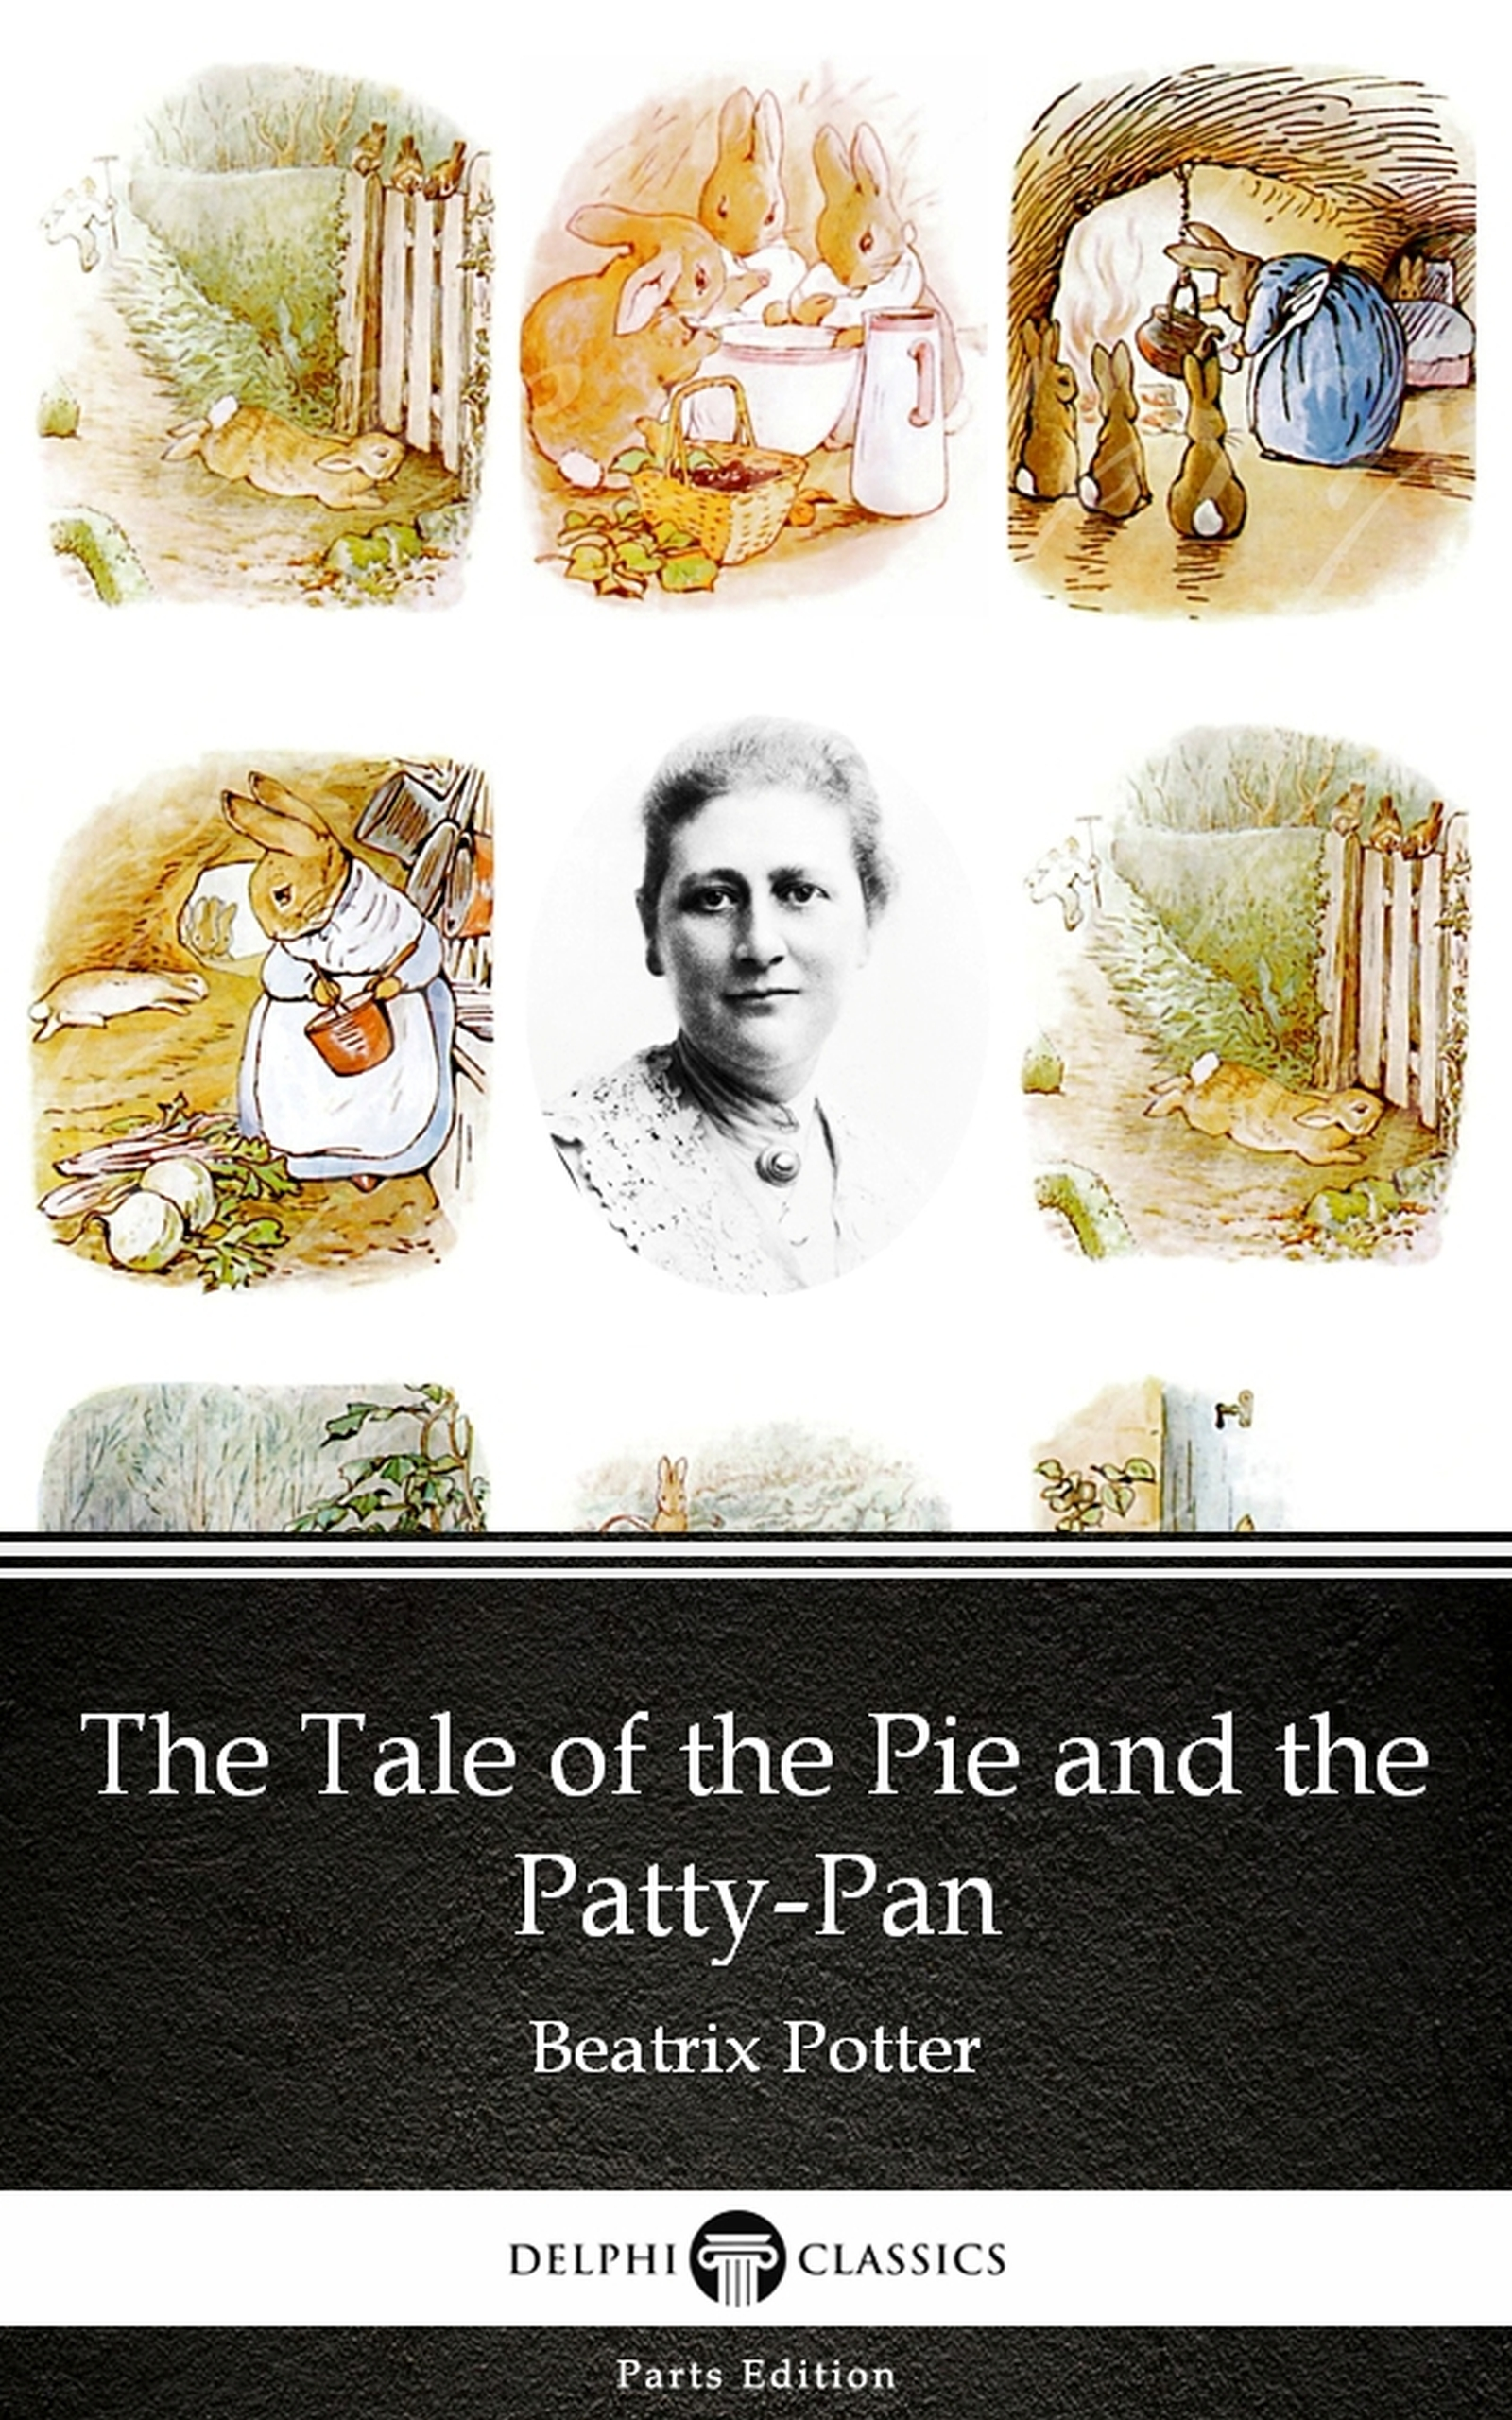 The Tale of the Pie and the Patty-Pan by Beatrix Potter - Delphi Classics (Illustrated)